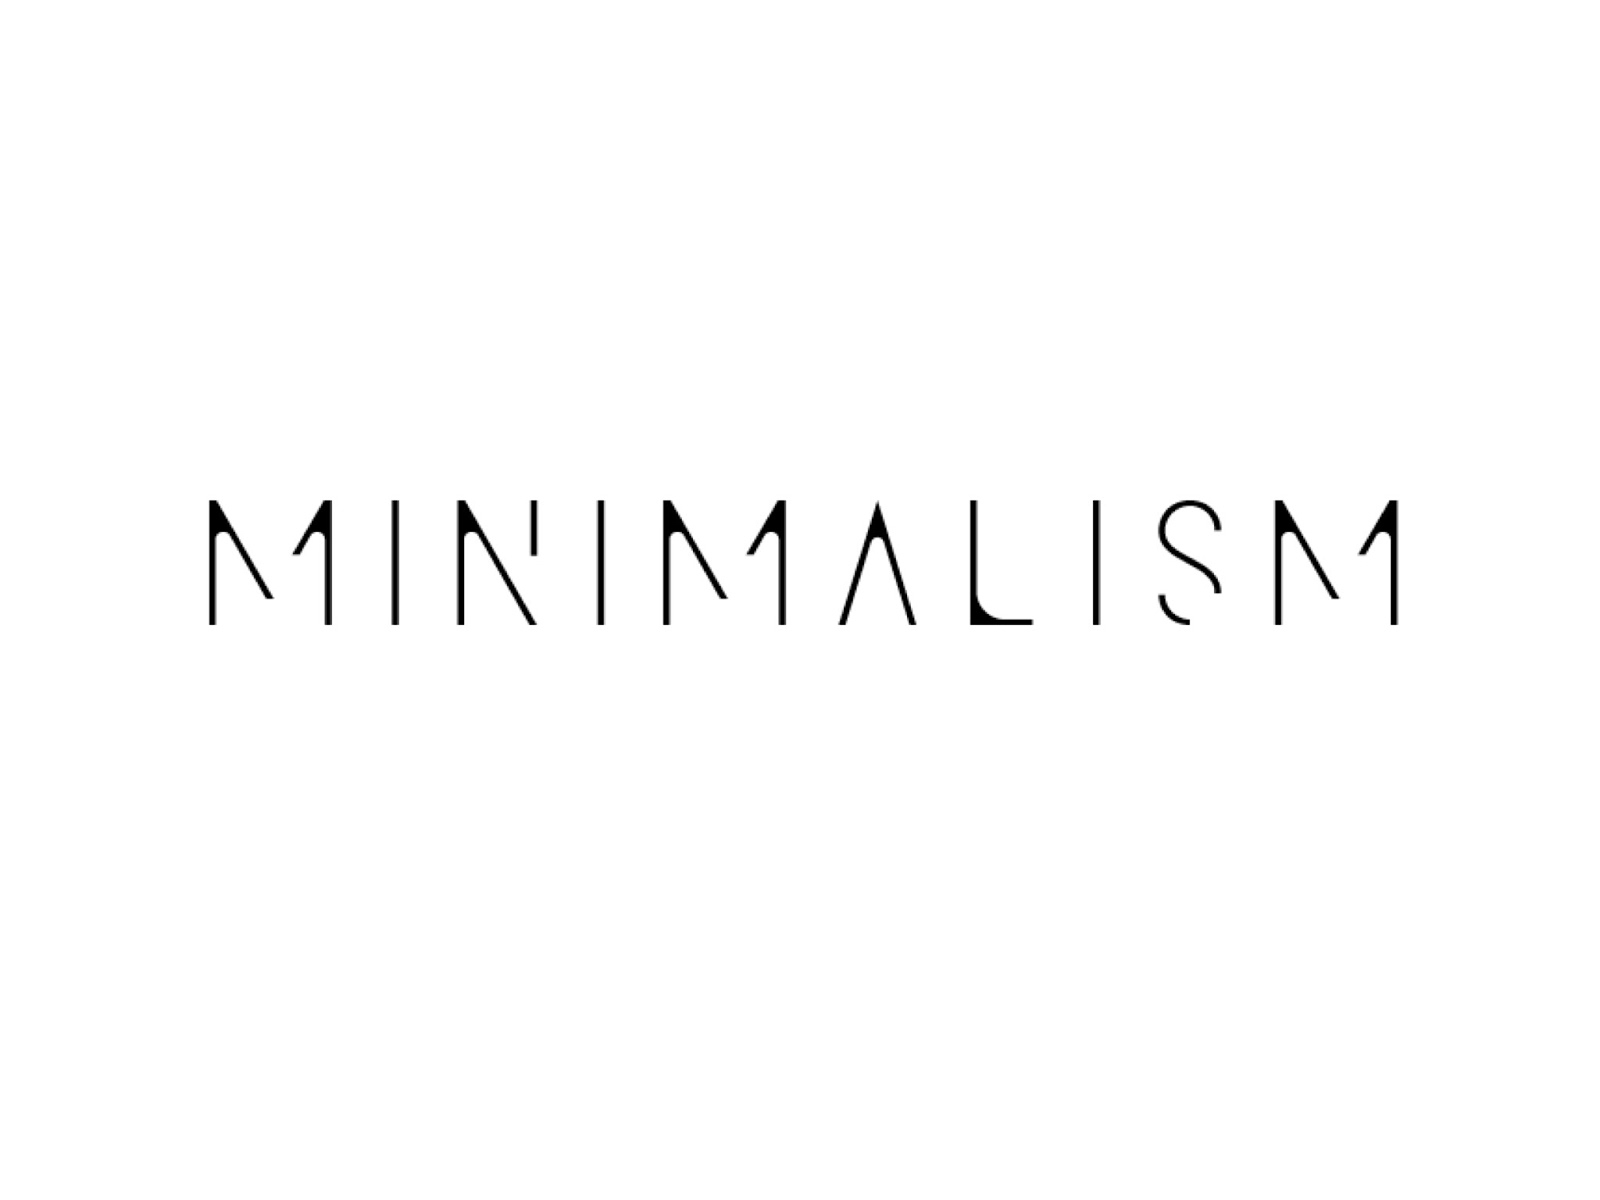 Her own skin be confident in your own skin for Who started minimalism